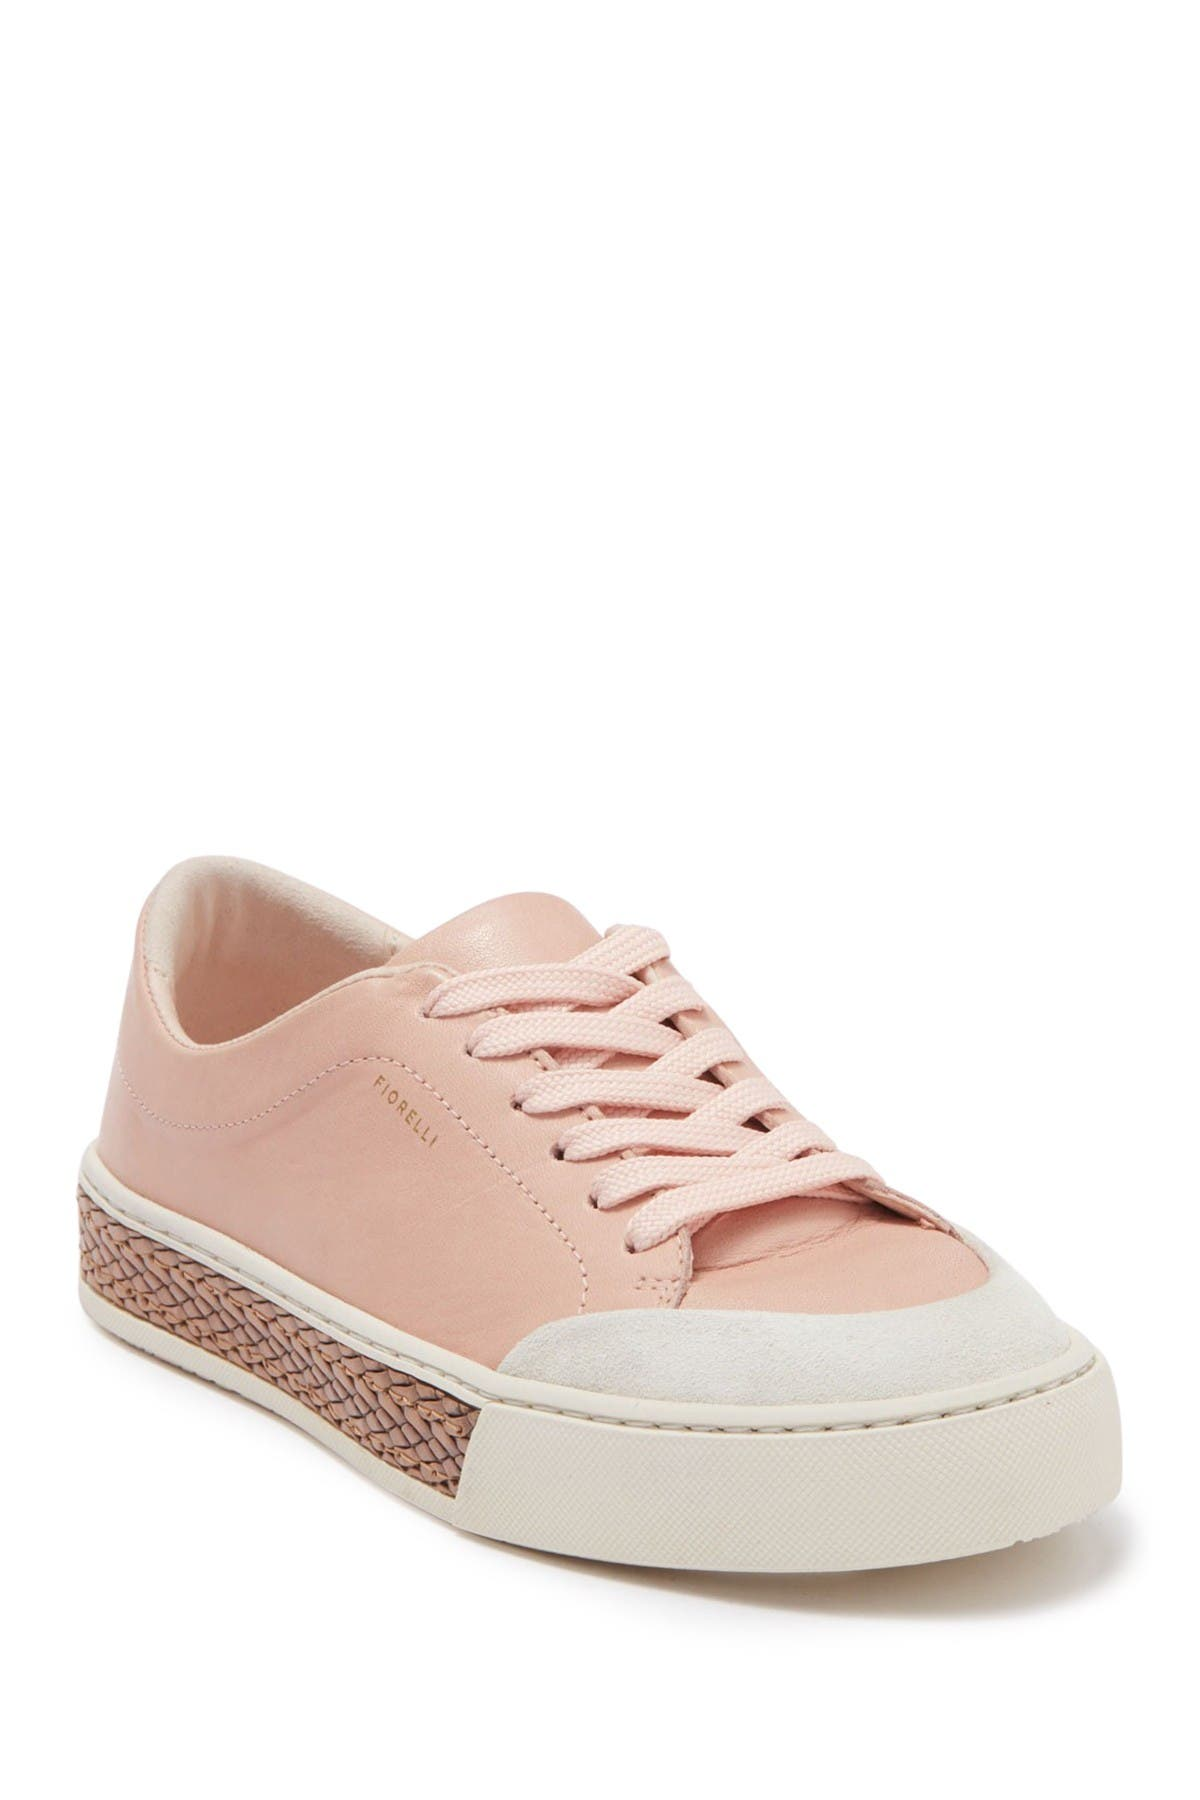 Image of Fiorelli Finley Leather Platform Sneaker